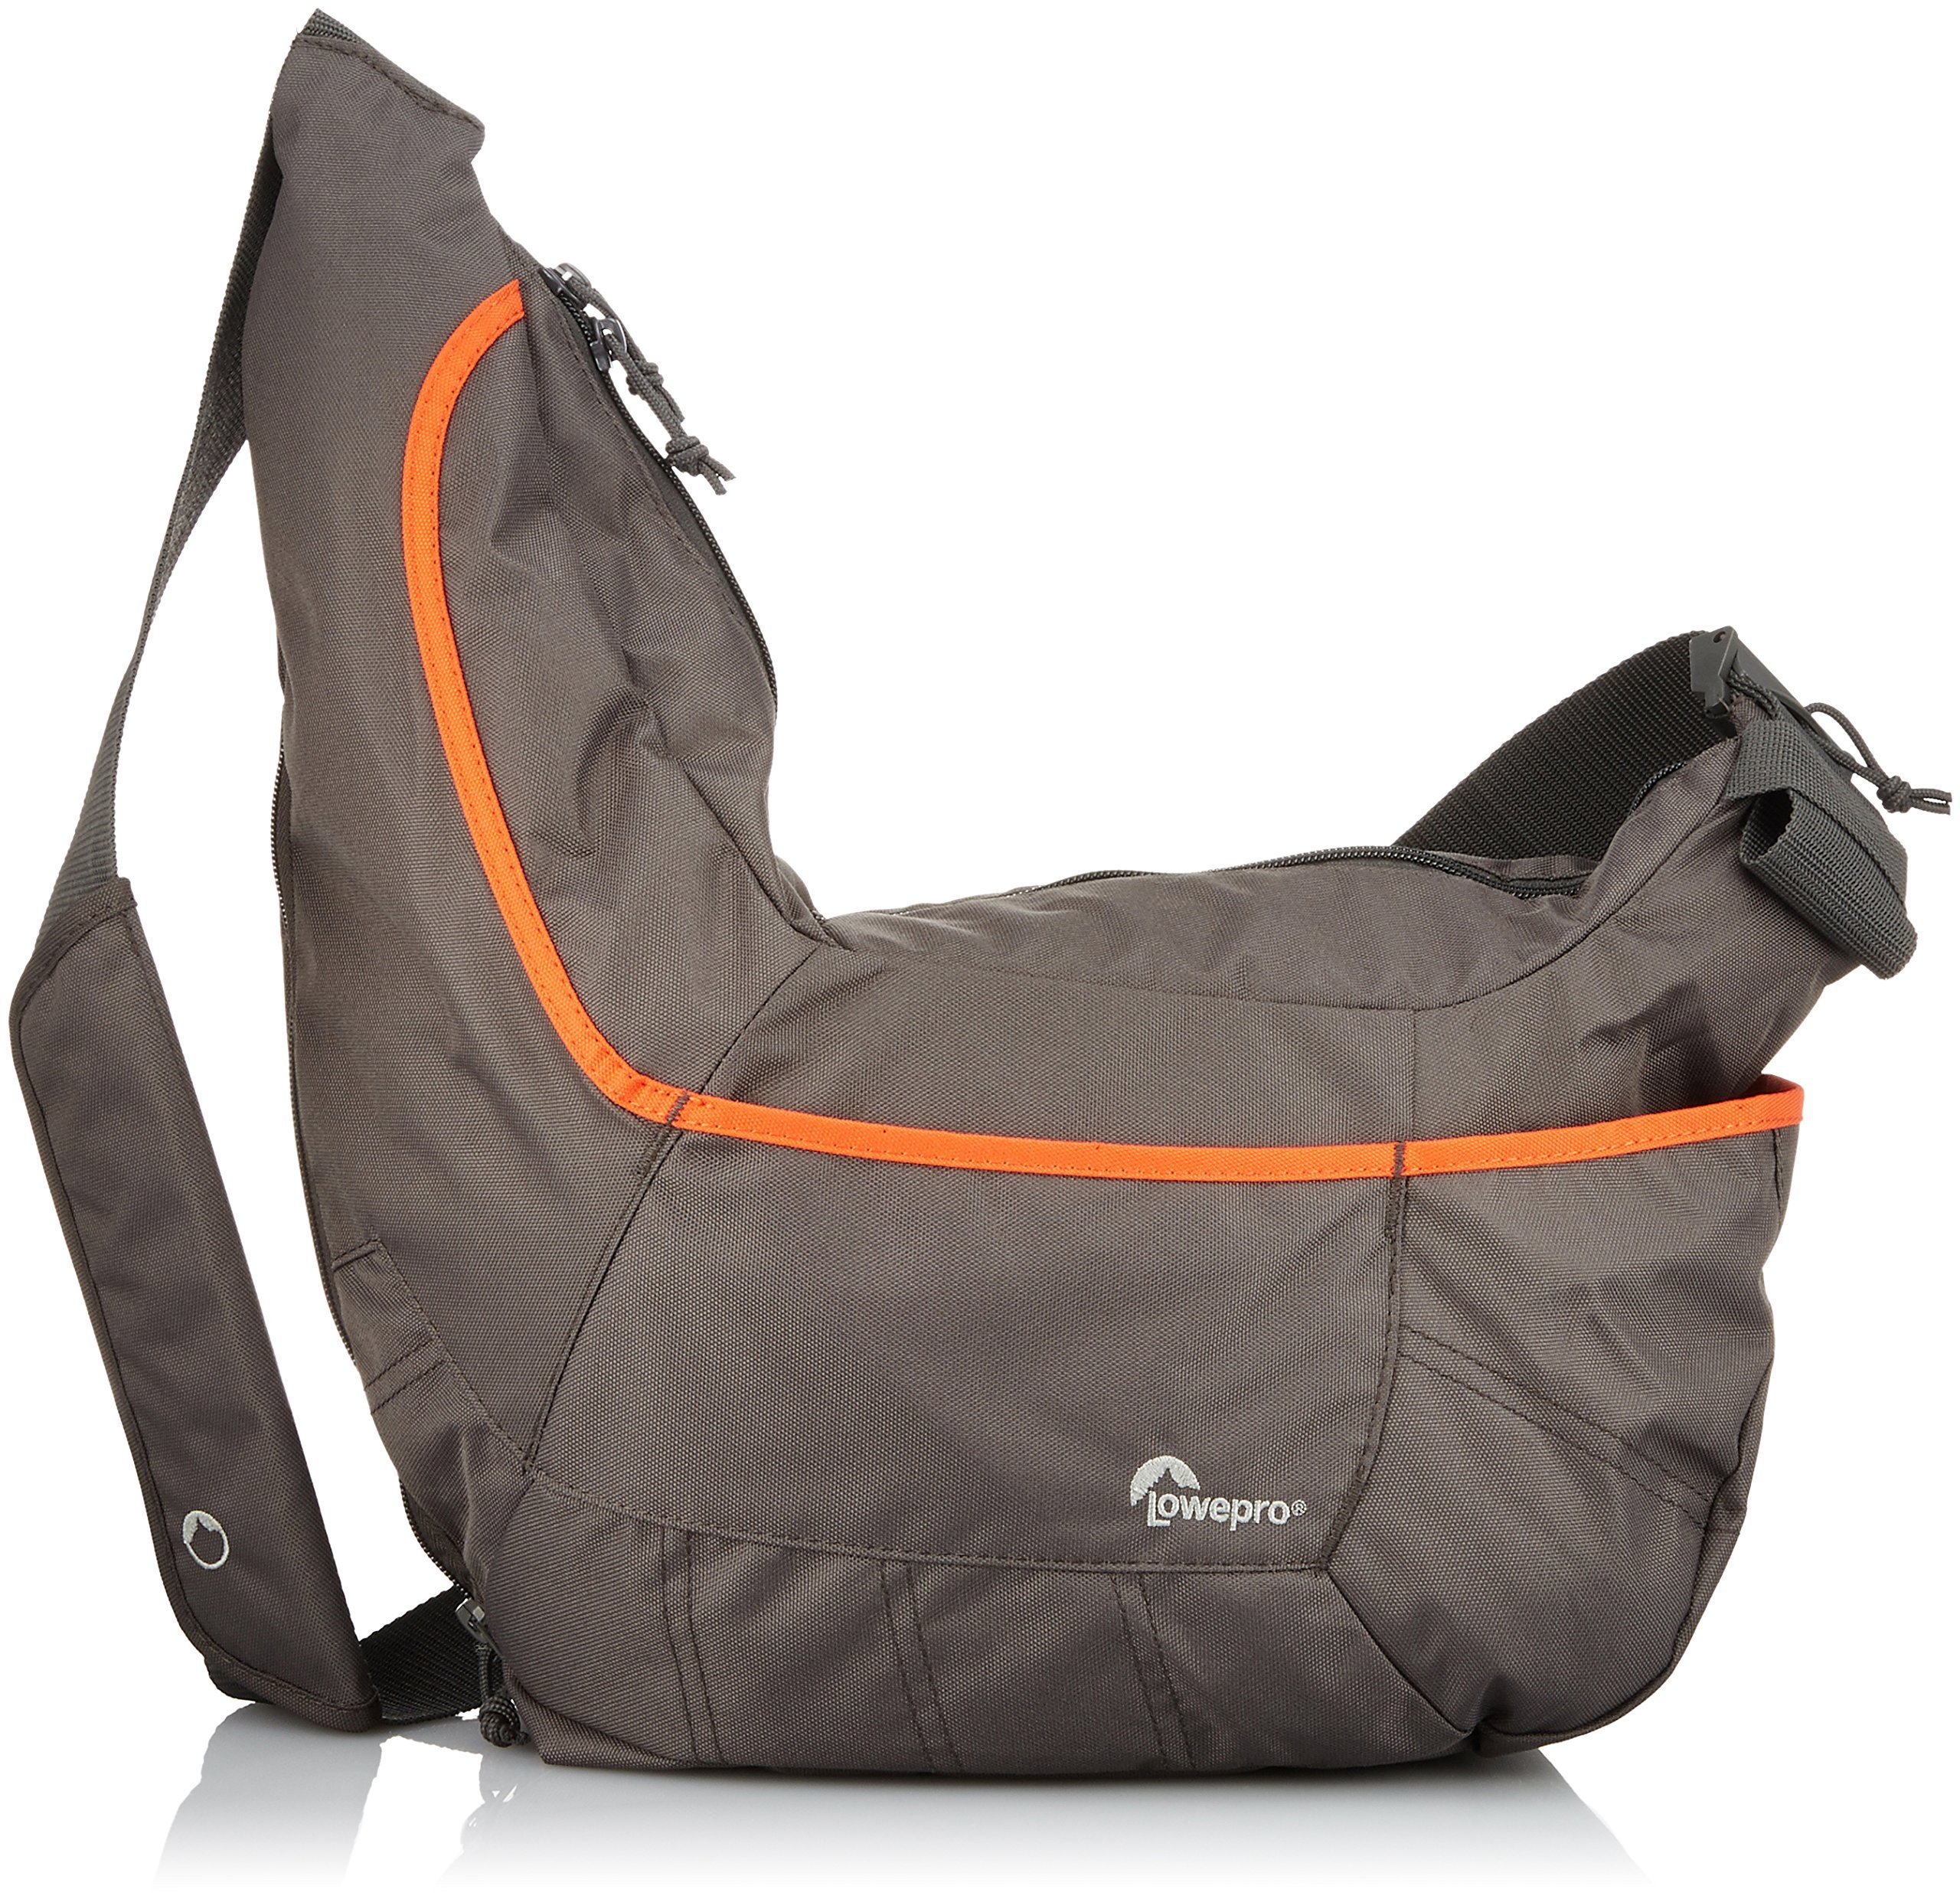 Lowepro Passport Sling III - A Protective Sling Bag for a Compact DSLR or CSC by Lowepro